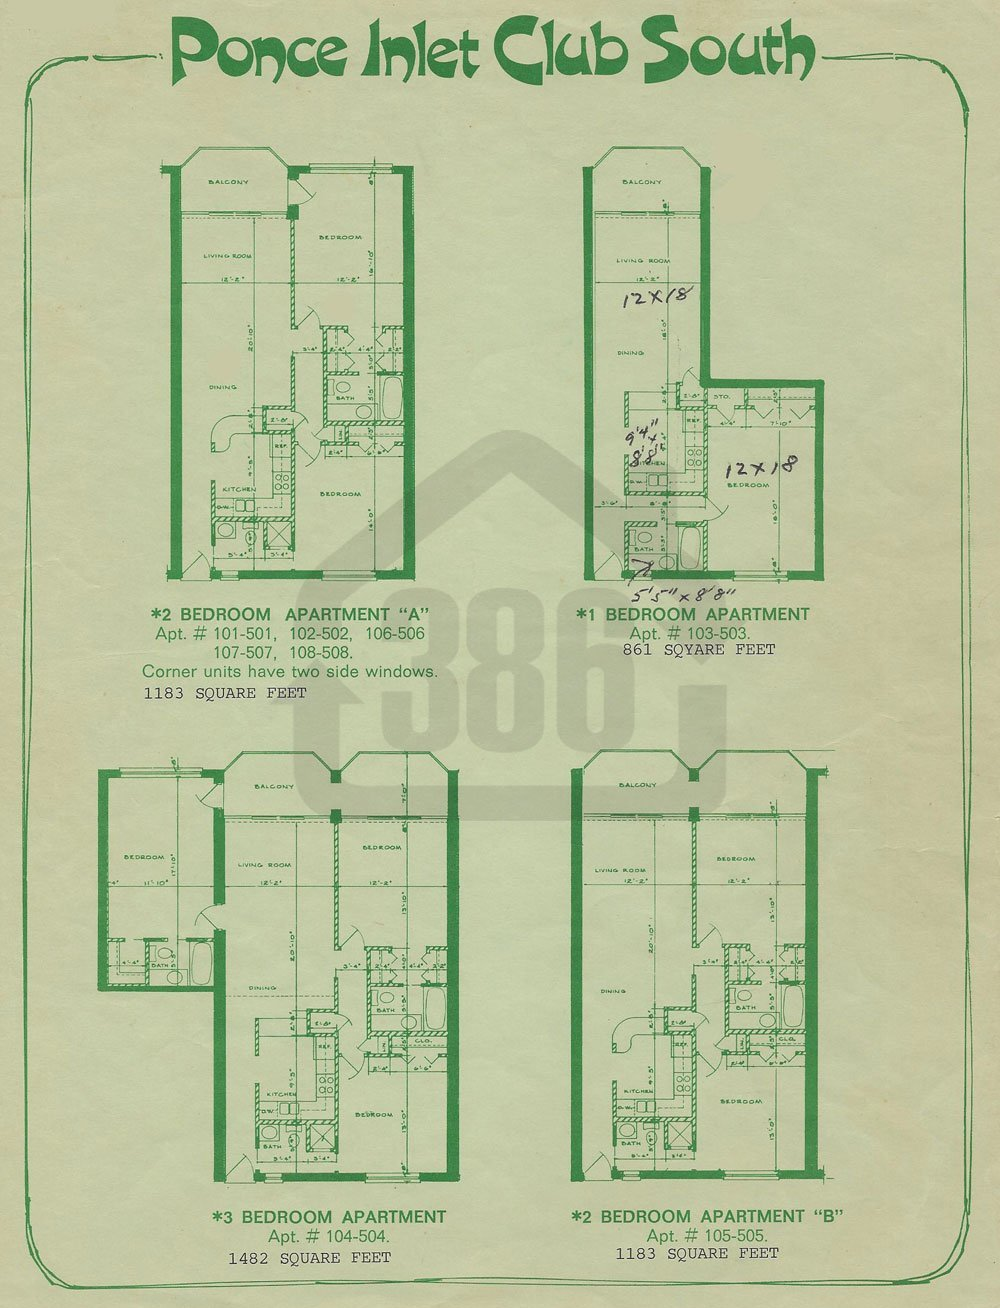 ponce inlet club south floor plan